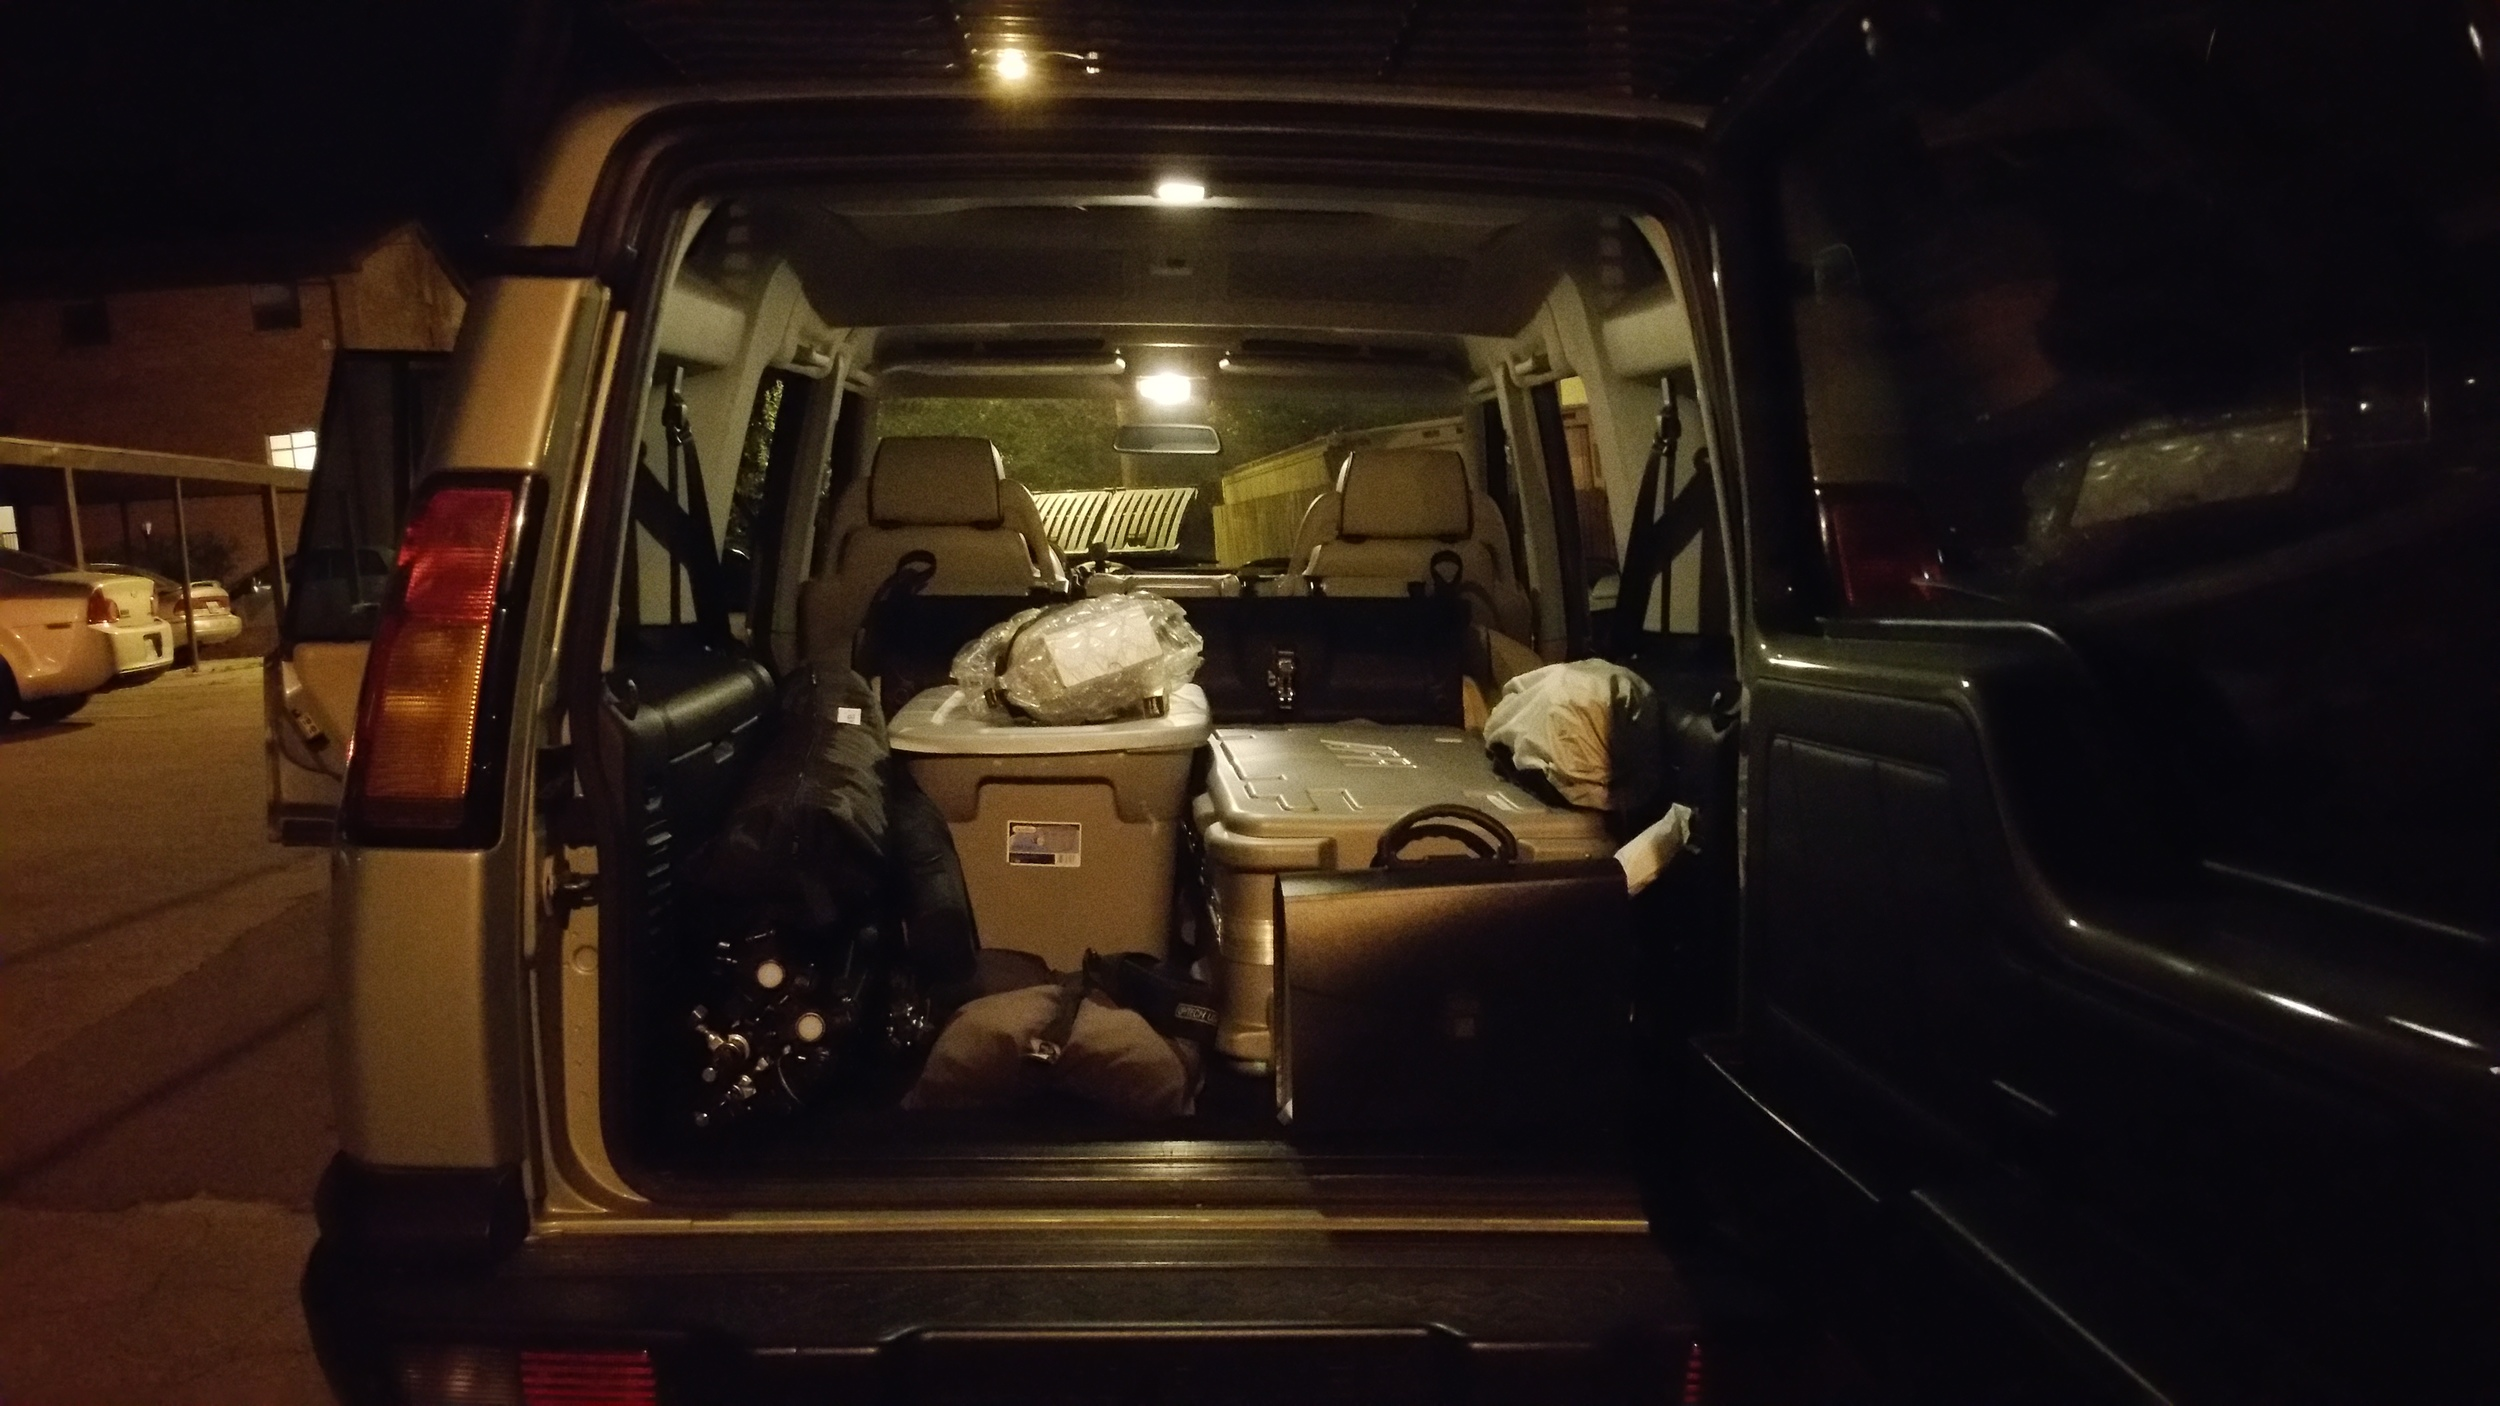 Our beloved Land Rover Discovery, loaded up with the essentials the night before the shoot.